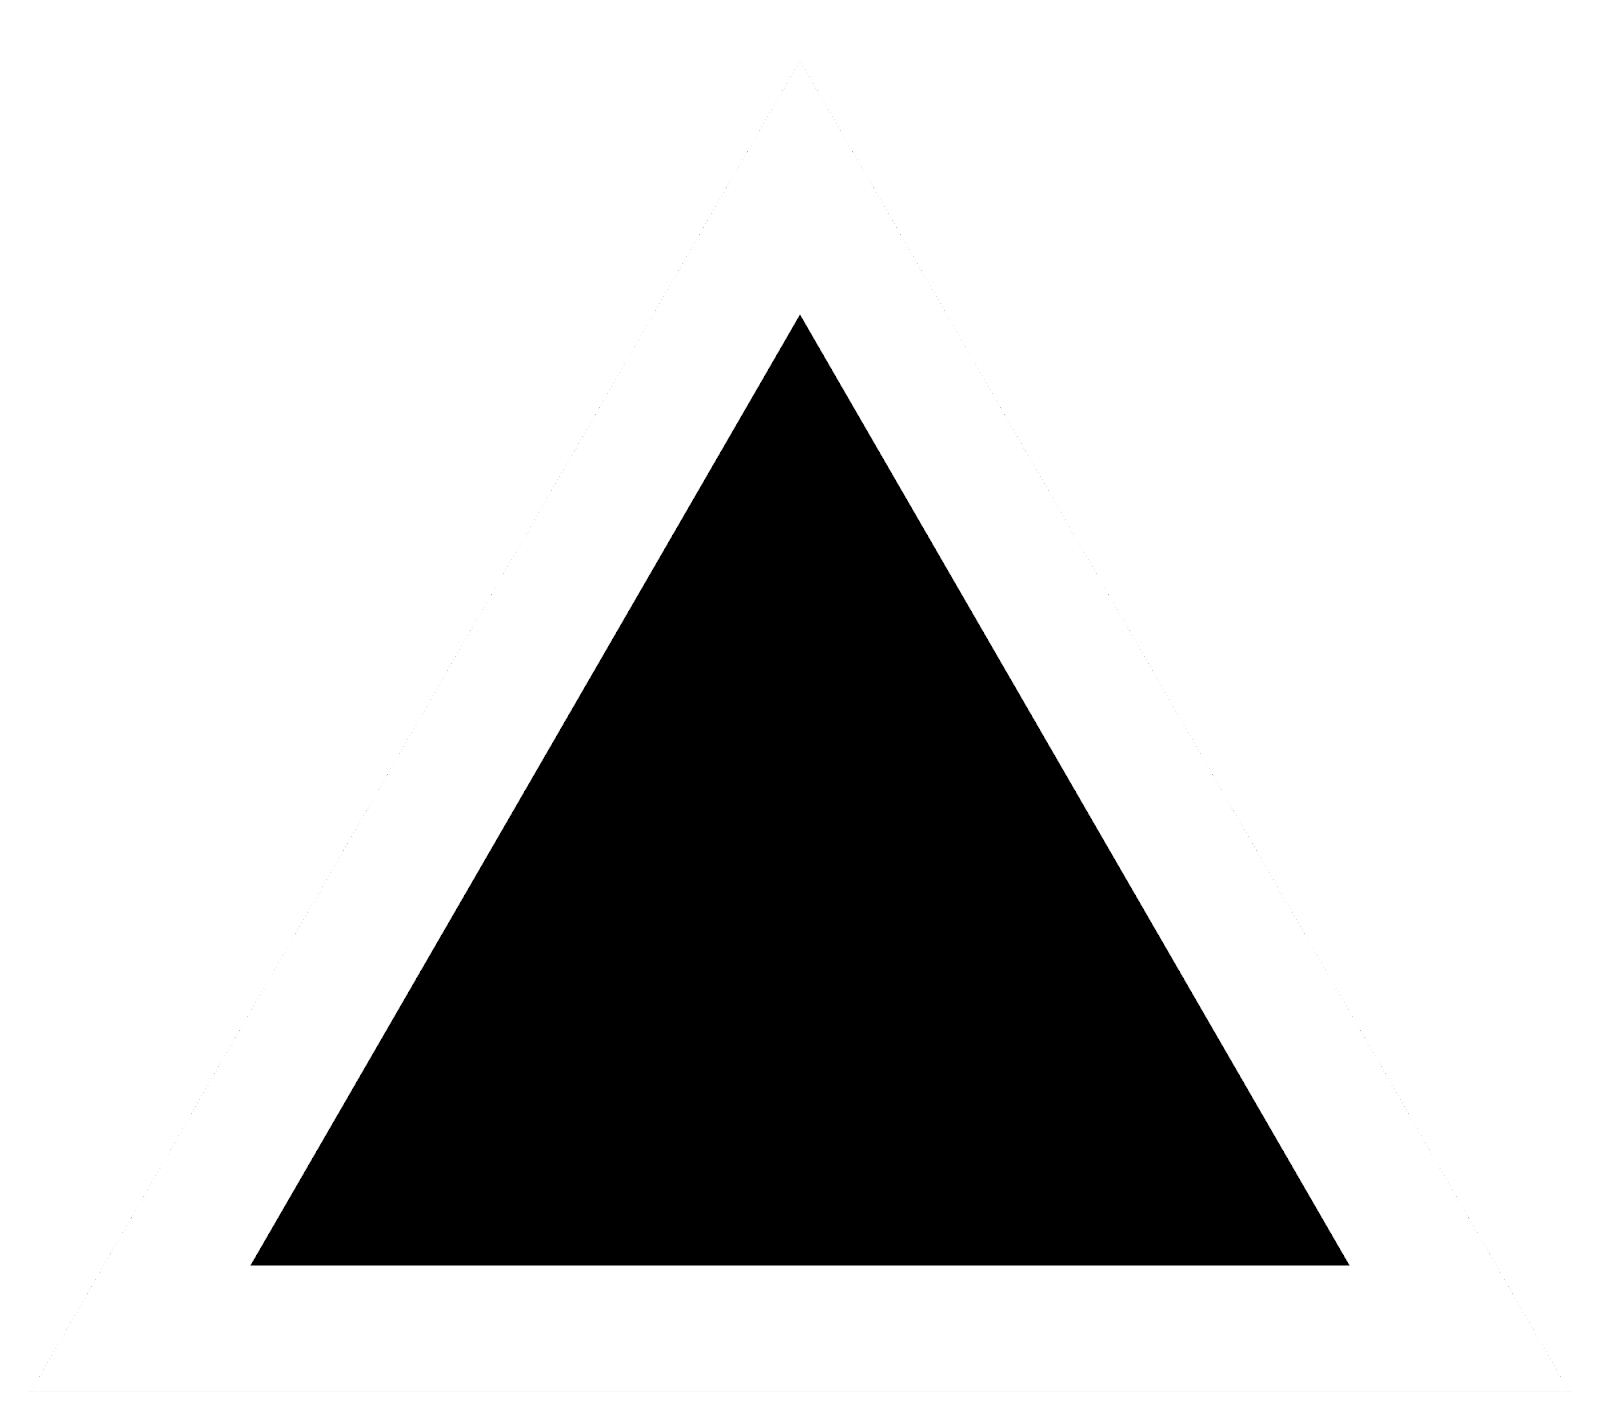 File:Black triangle with thick white border.svg - Wikimedia Commons